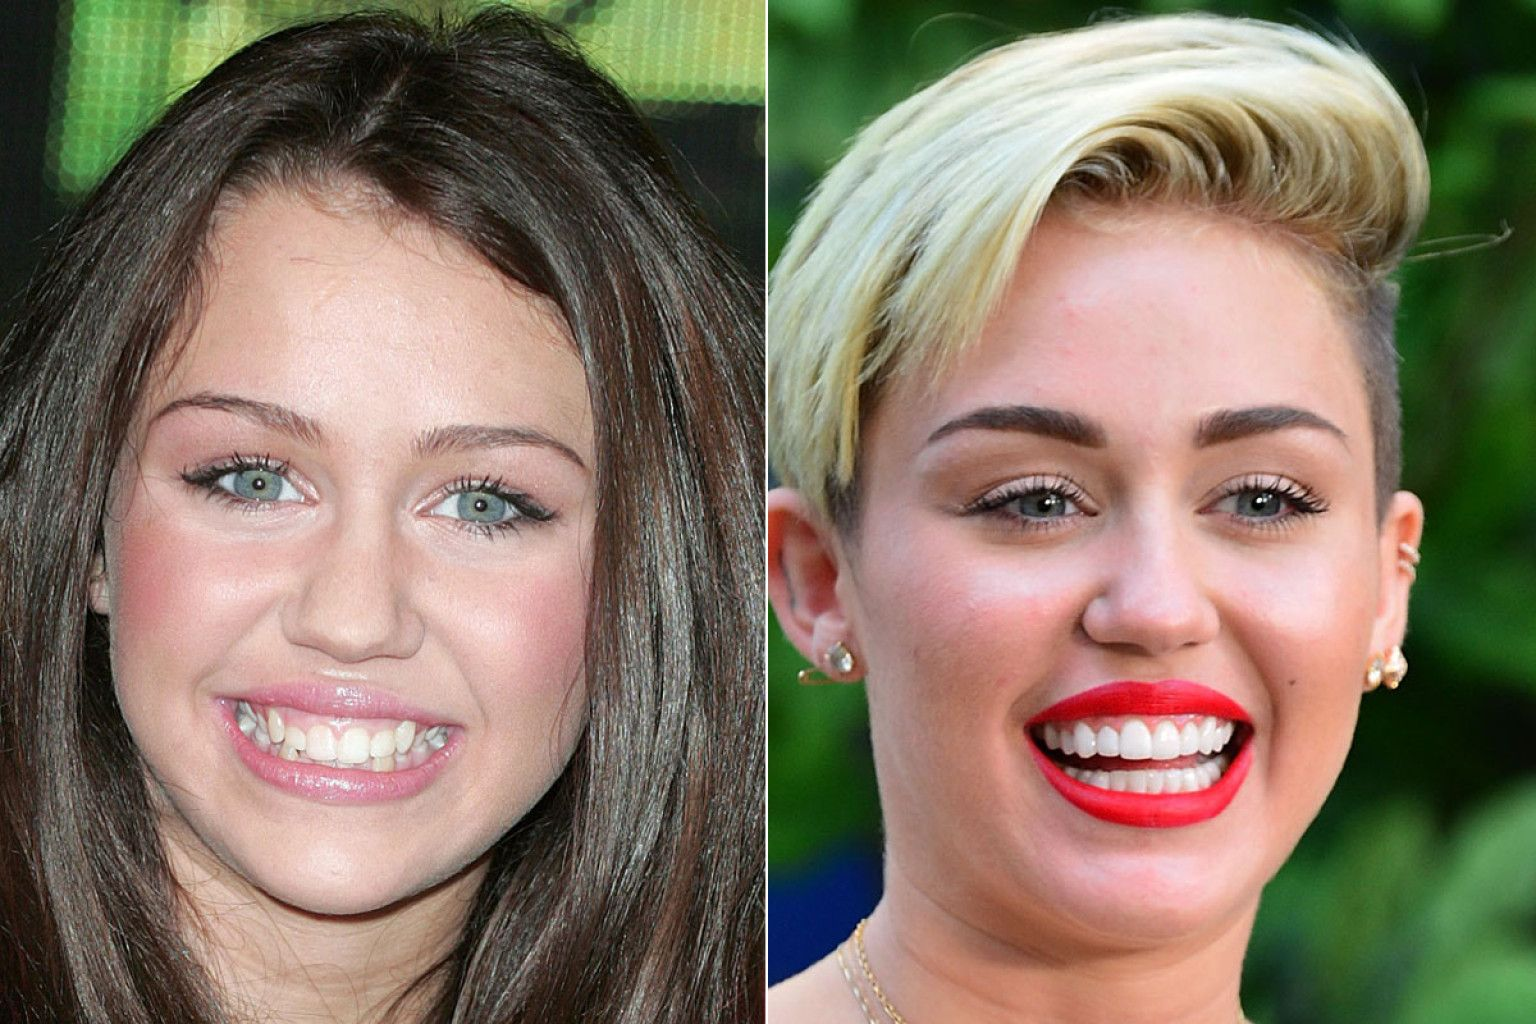 20 Hollywood Celebs You Didn't Know Have Fake Teeth